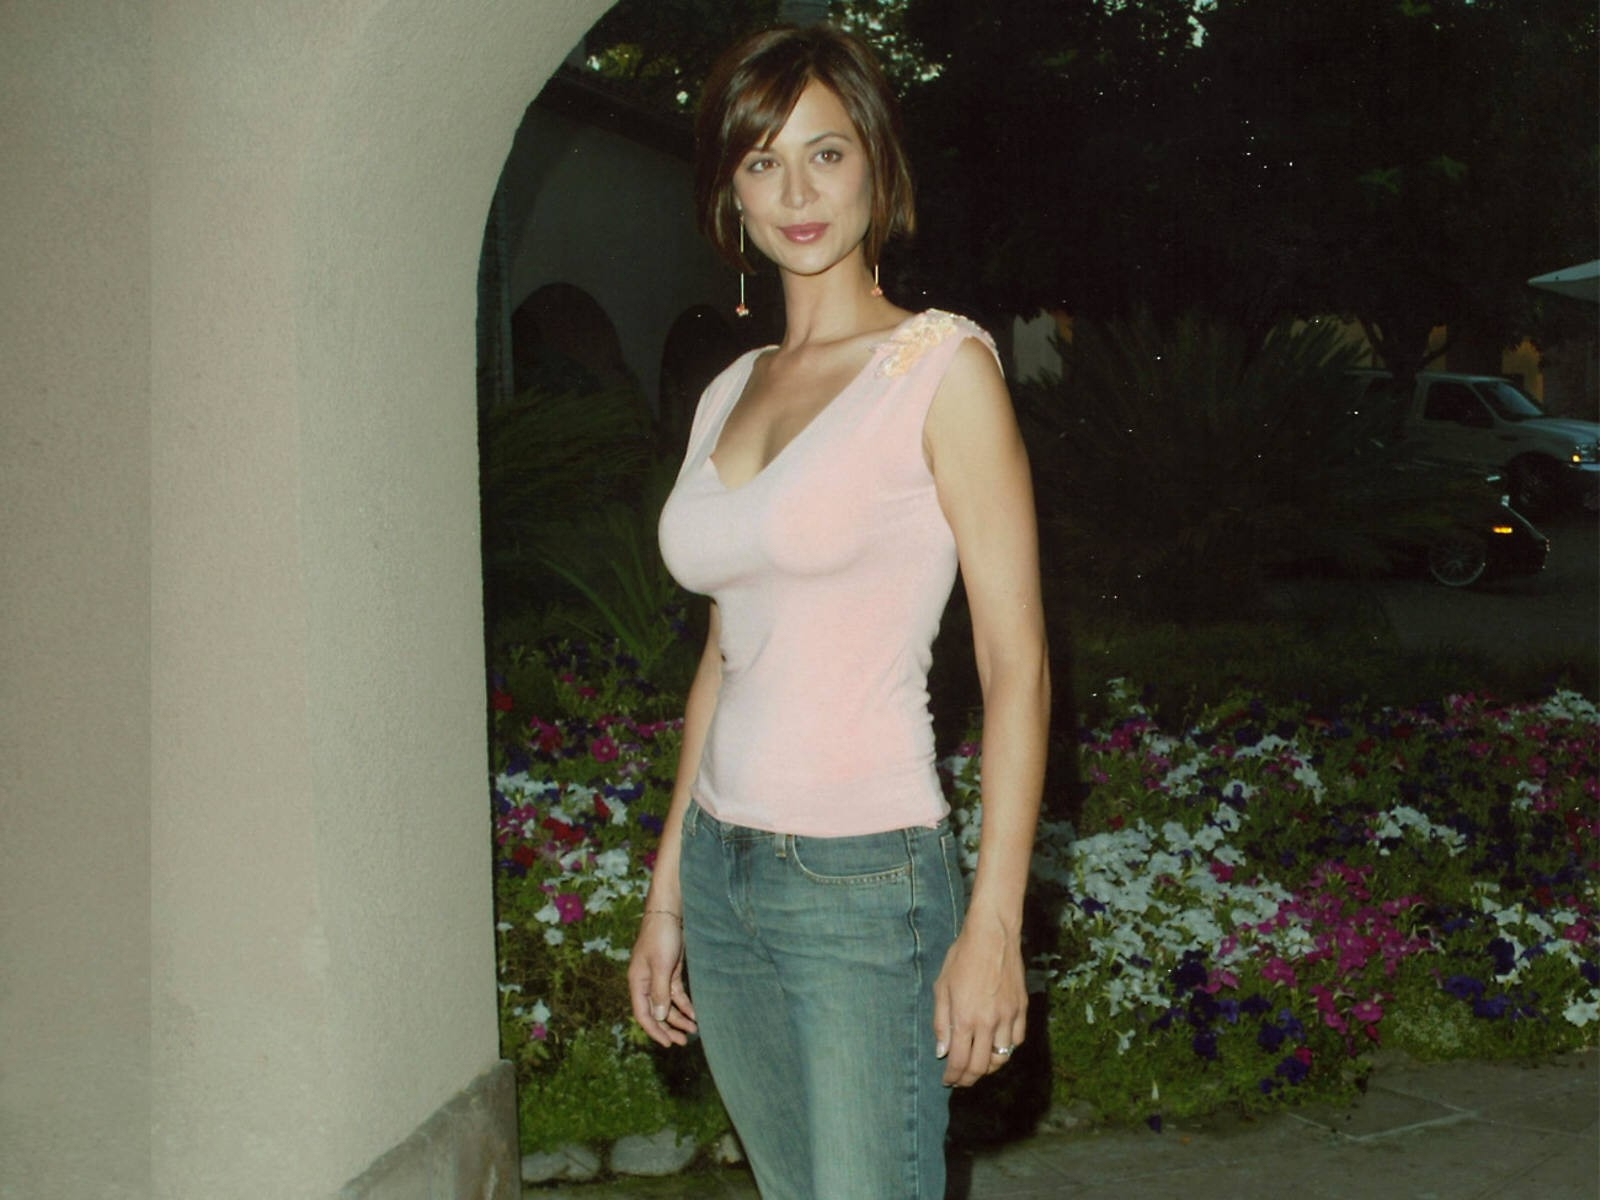 Wallpaper dell'attrice inglese Catherine Bell